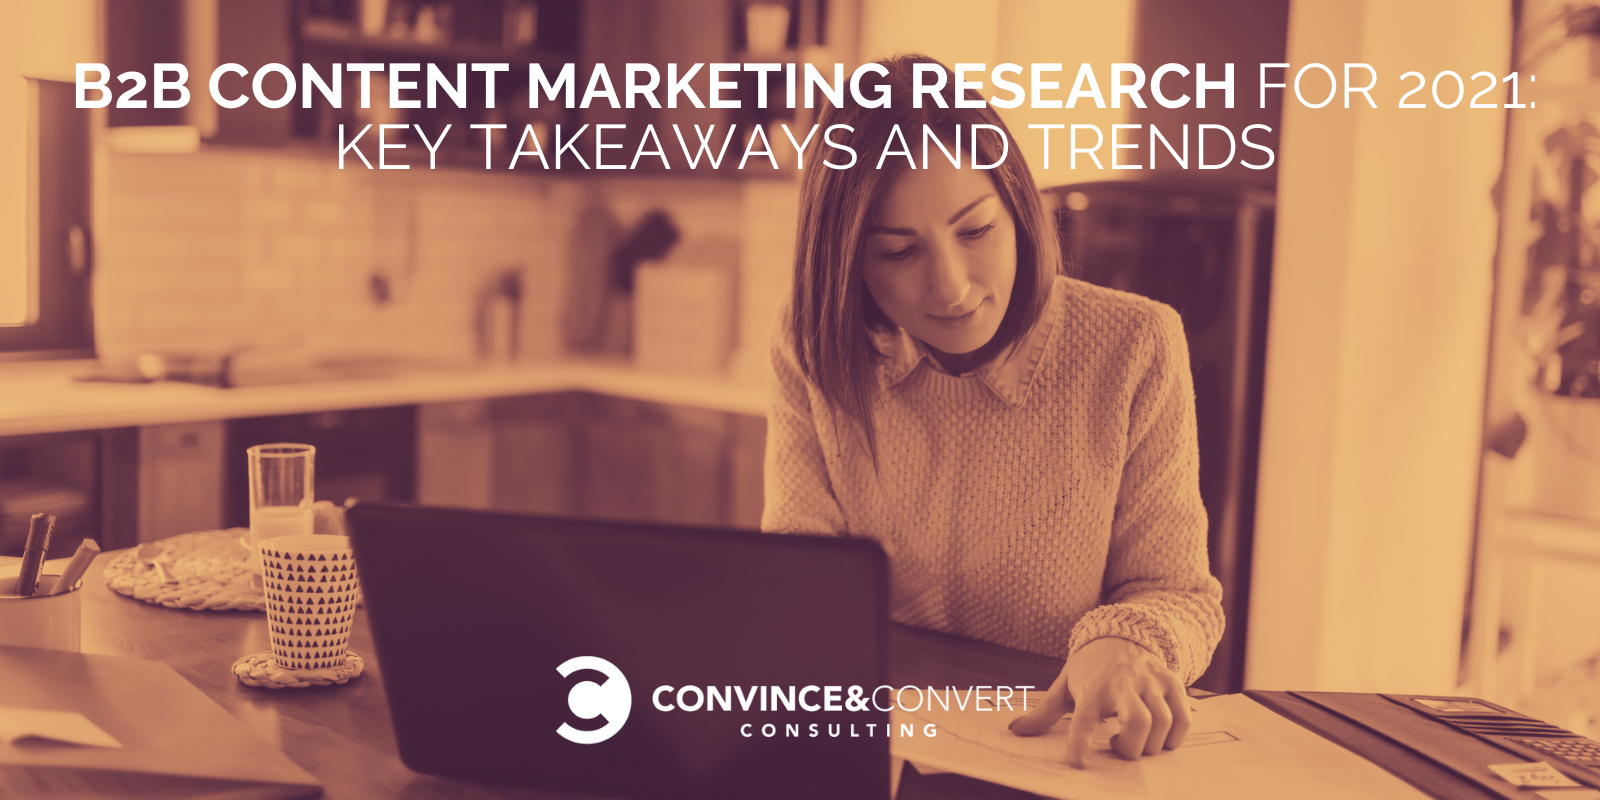 B2B Content Marketing Research for 2021: Key Takeaways and Trends